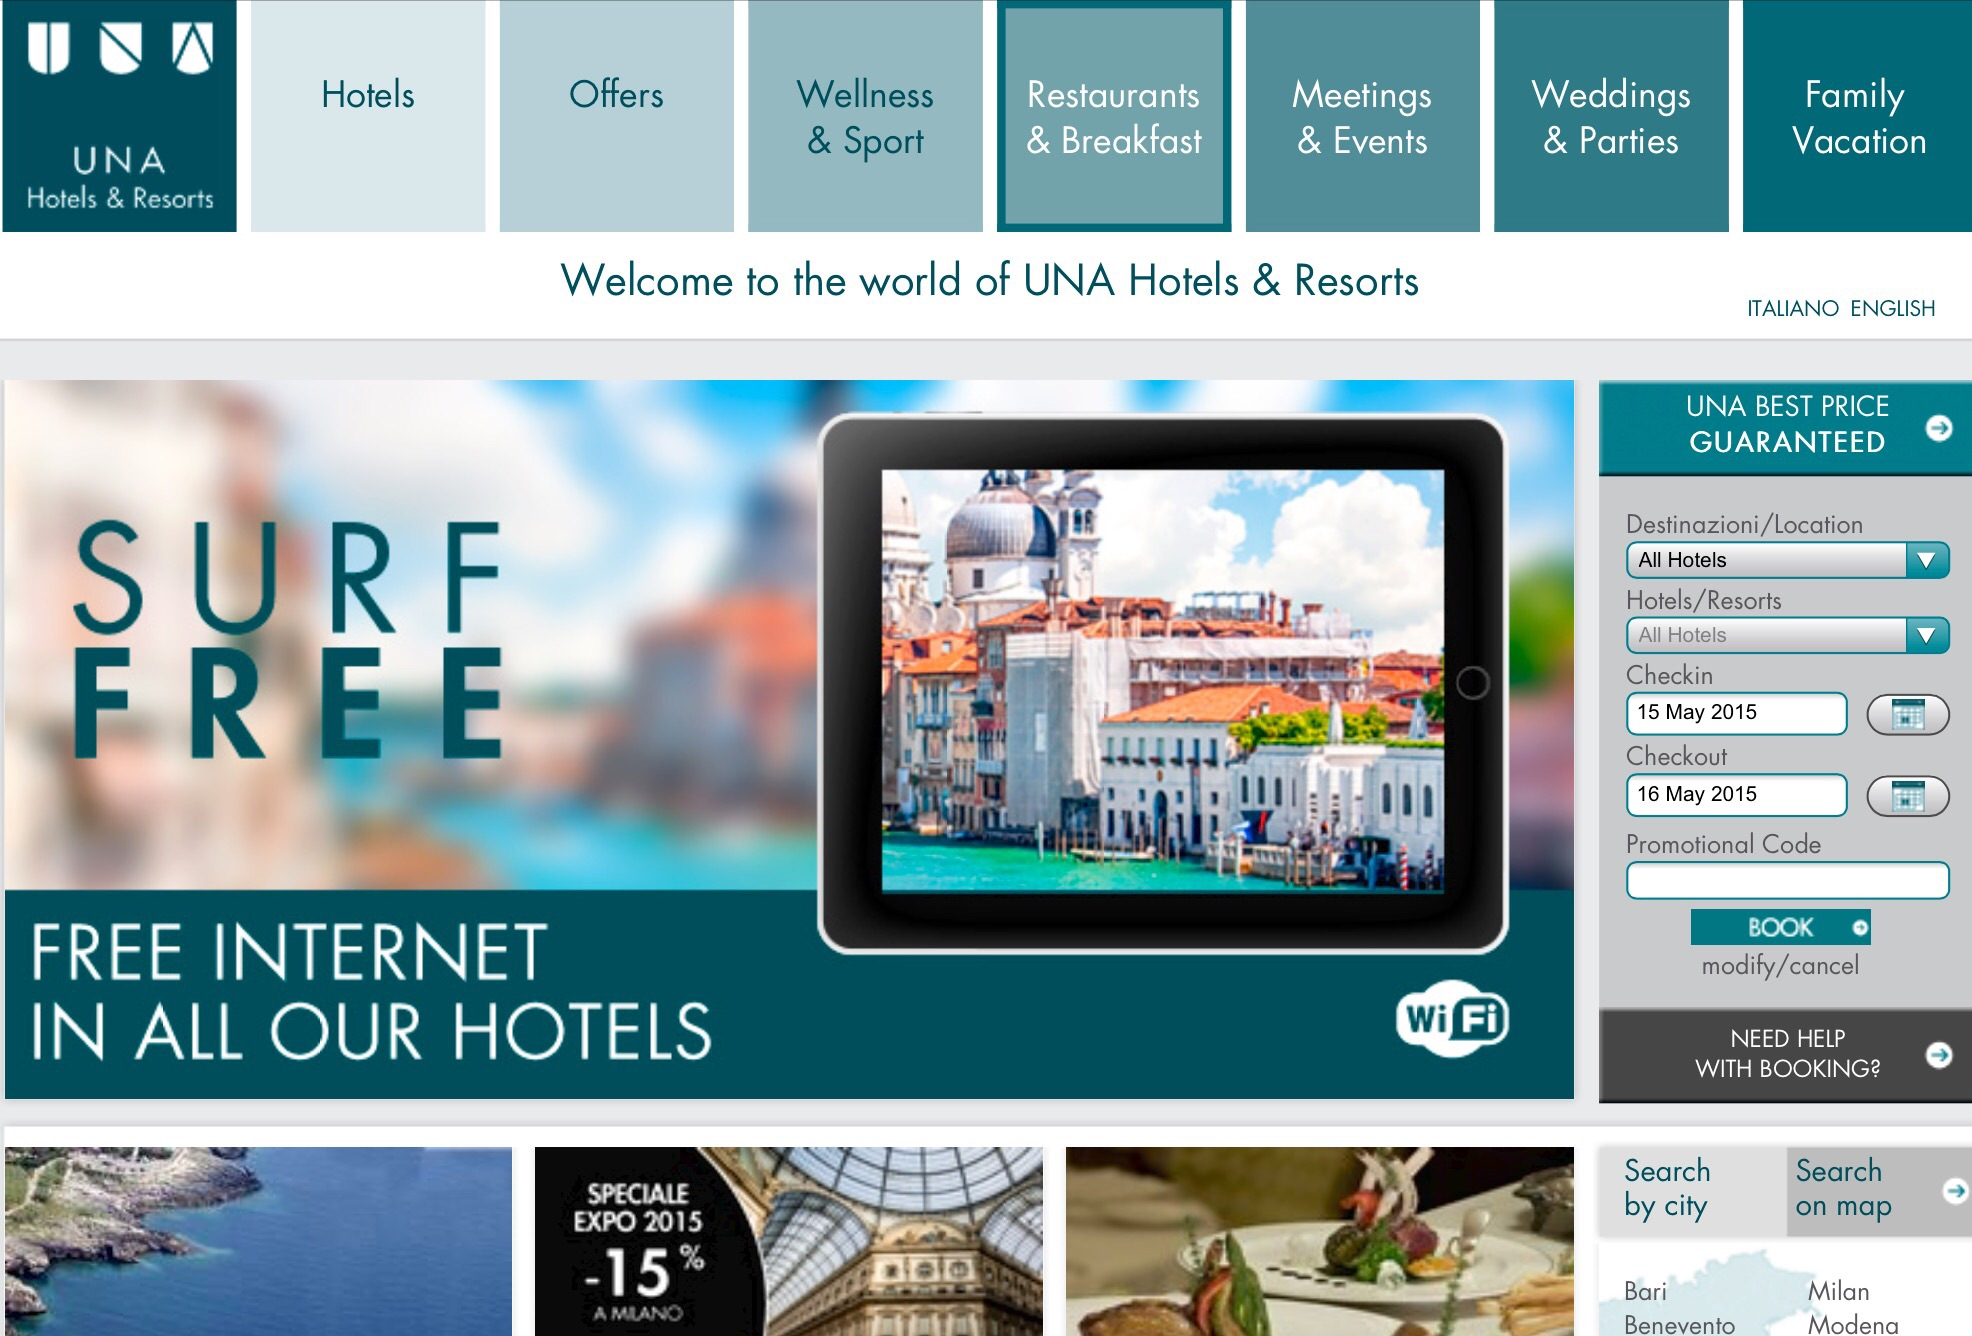 How to use a UNA Hotels coupon